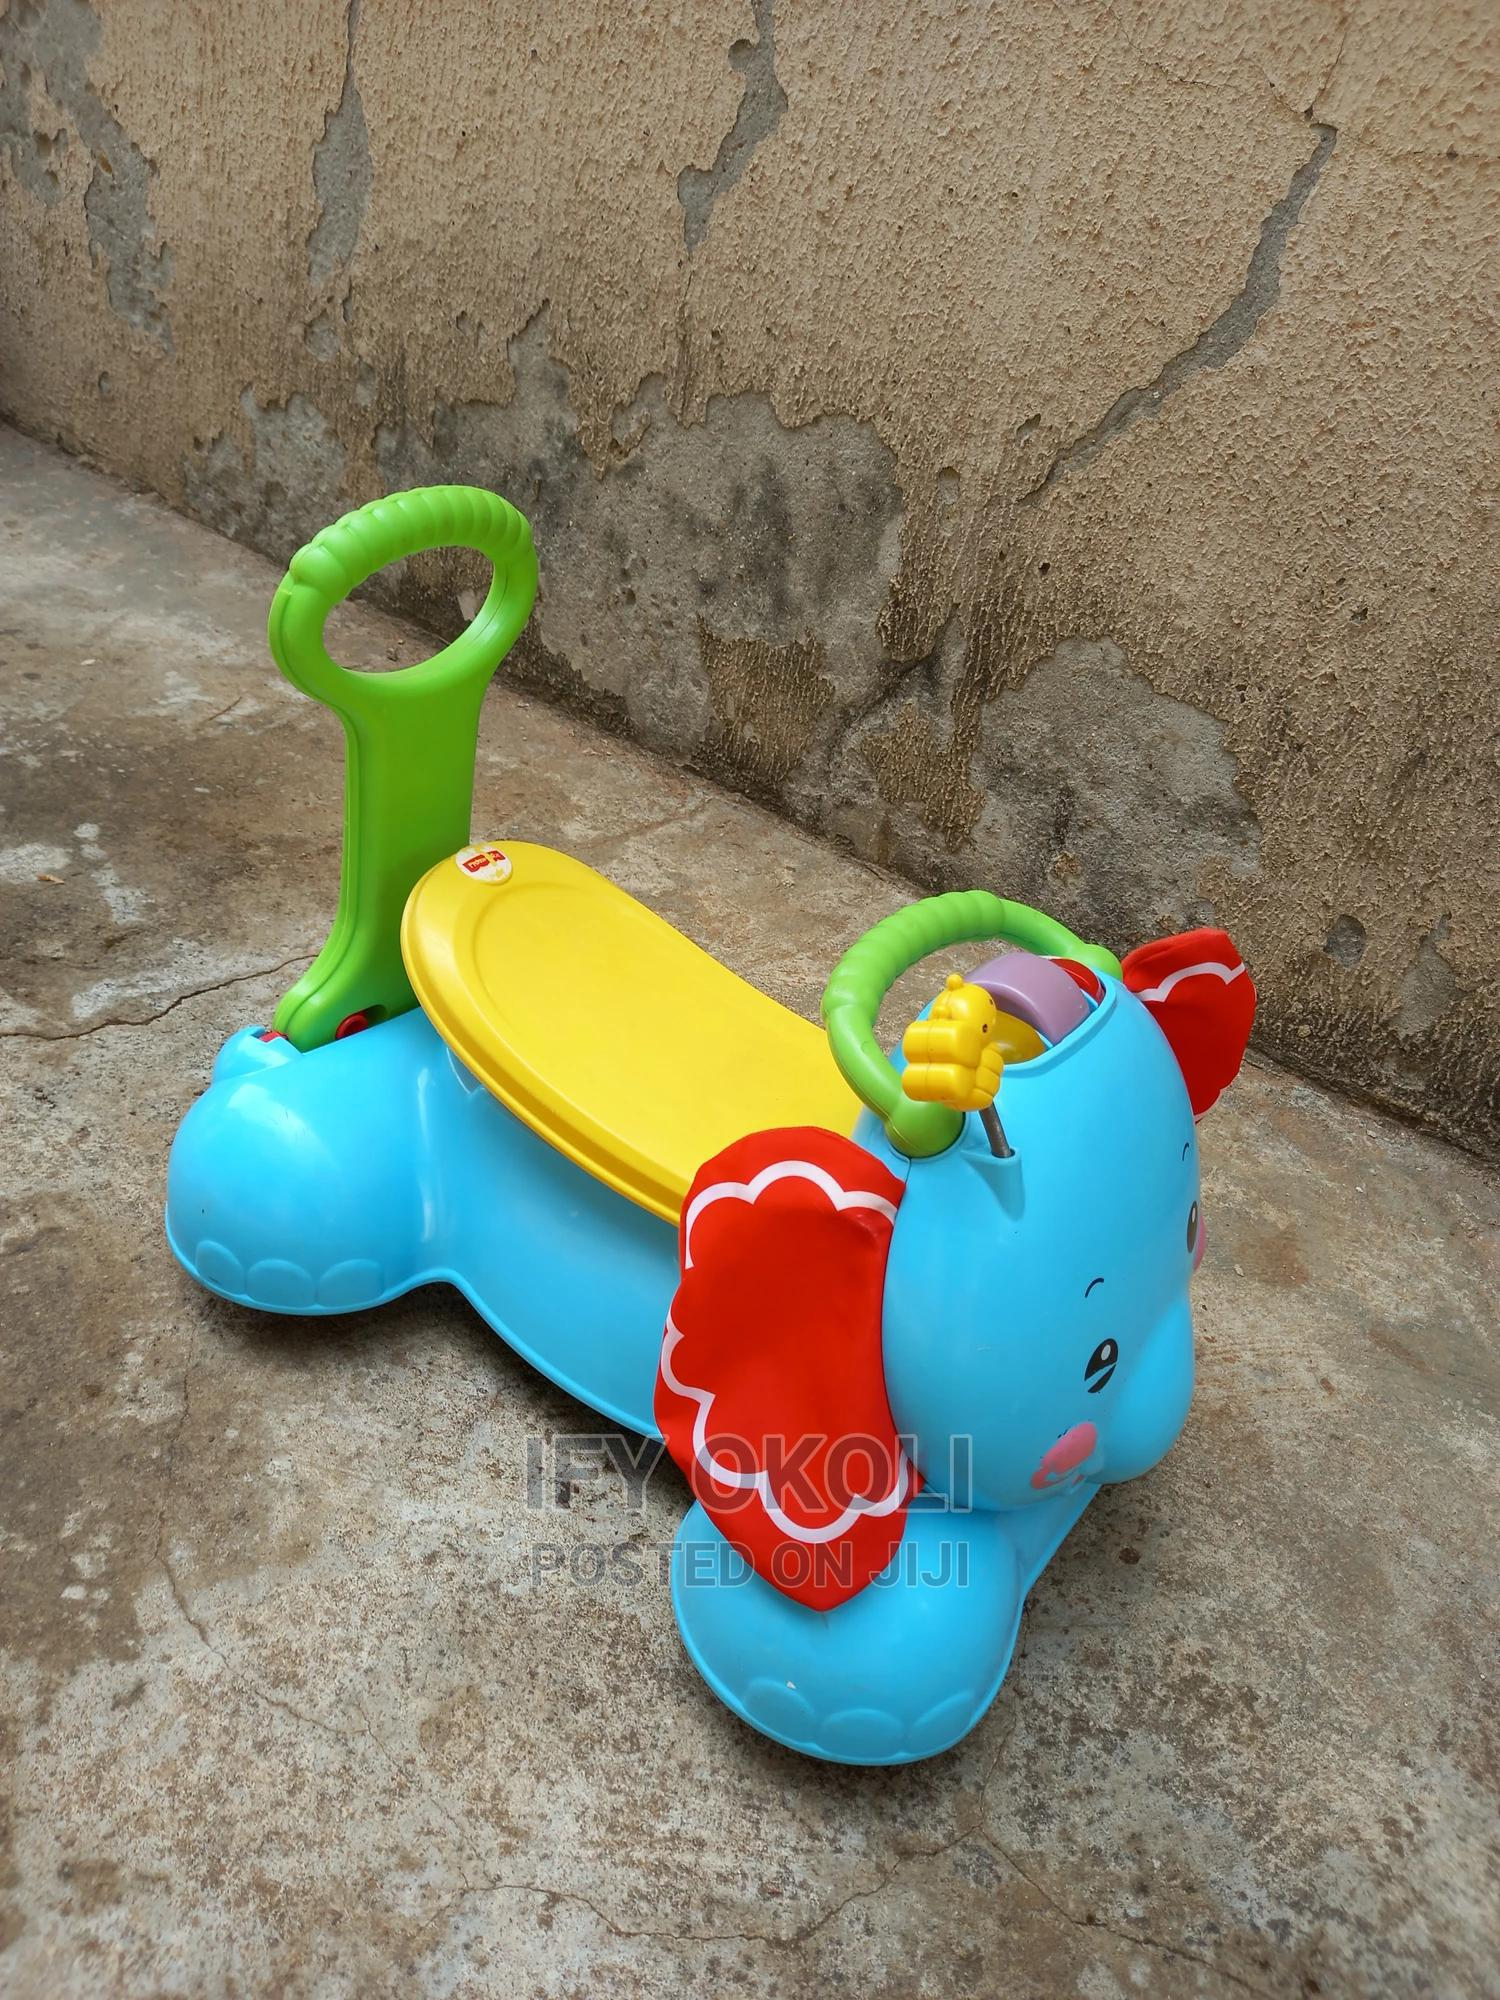 Fisher-Price Ride on Elephant   Toys for sale in Gwarinpa, Abuja (FCT) State, Nigeria